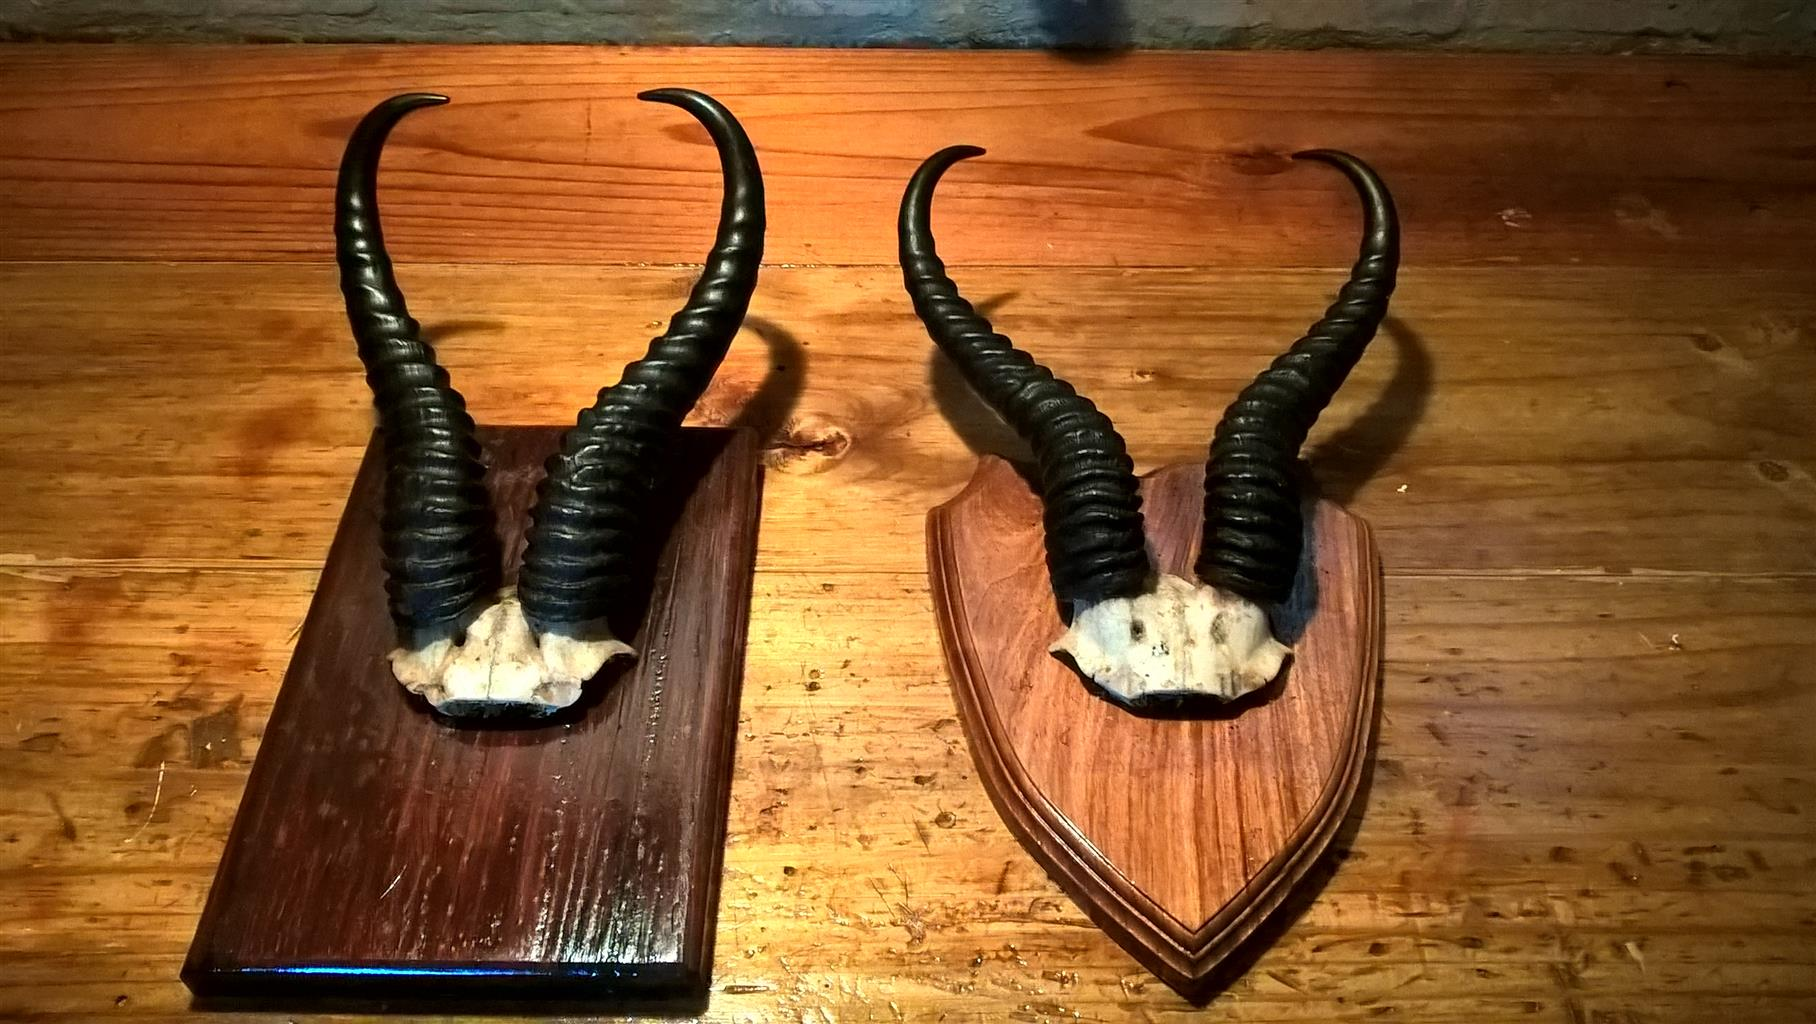 art decor horns mounted on shield